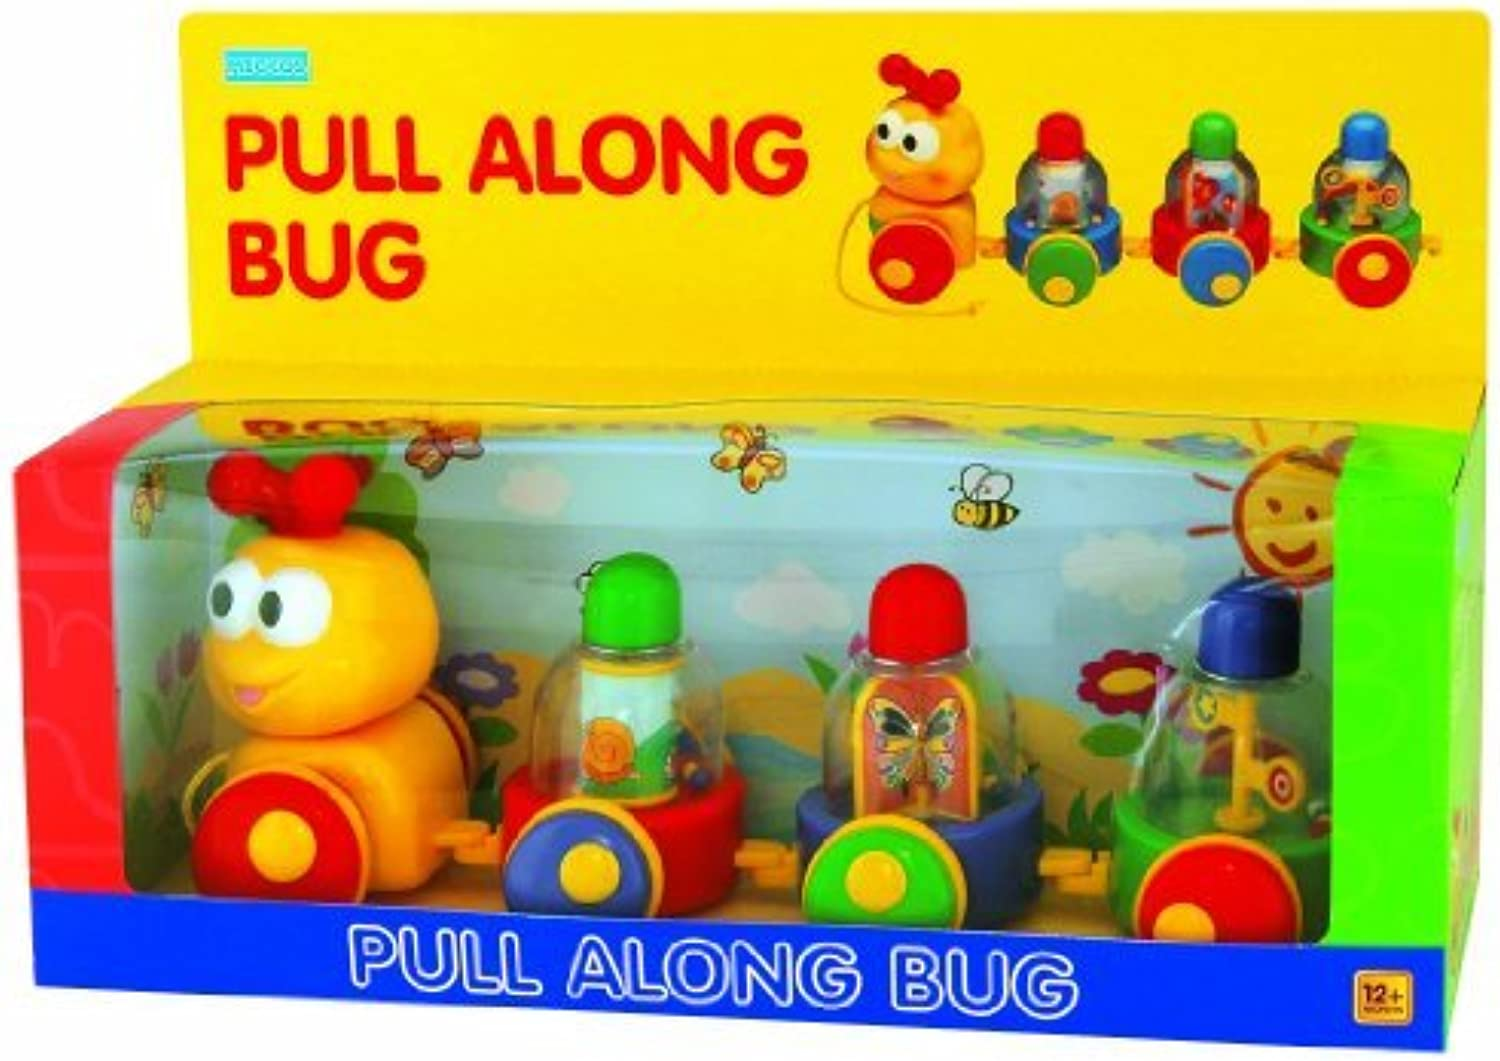 Pull Along Bug' Toddler Toy by Megcos  Affordable Gift for your Little One  Item  LMID1162 by Megcos